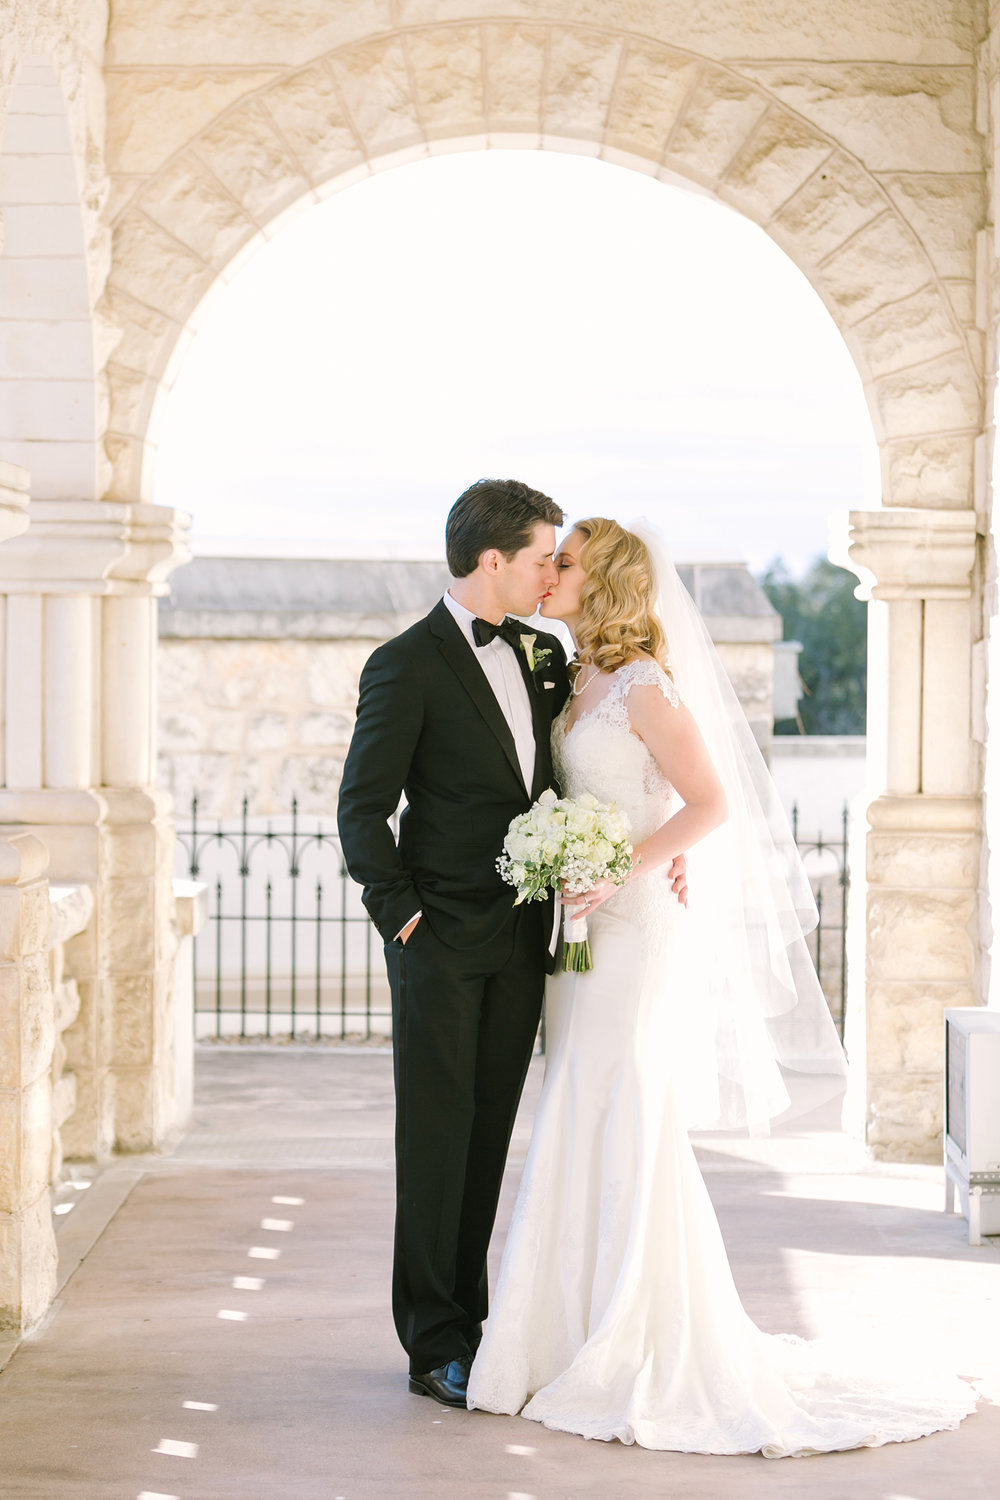 Austin_Wedding_Photographer_Kimberly_Brooke_Photographic_140.jpg